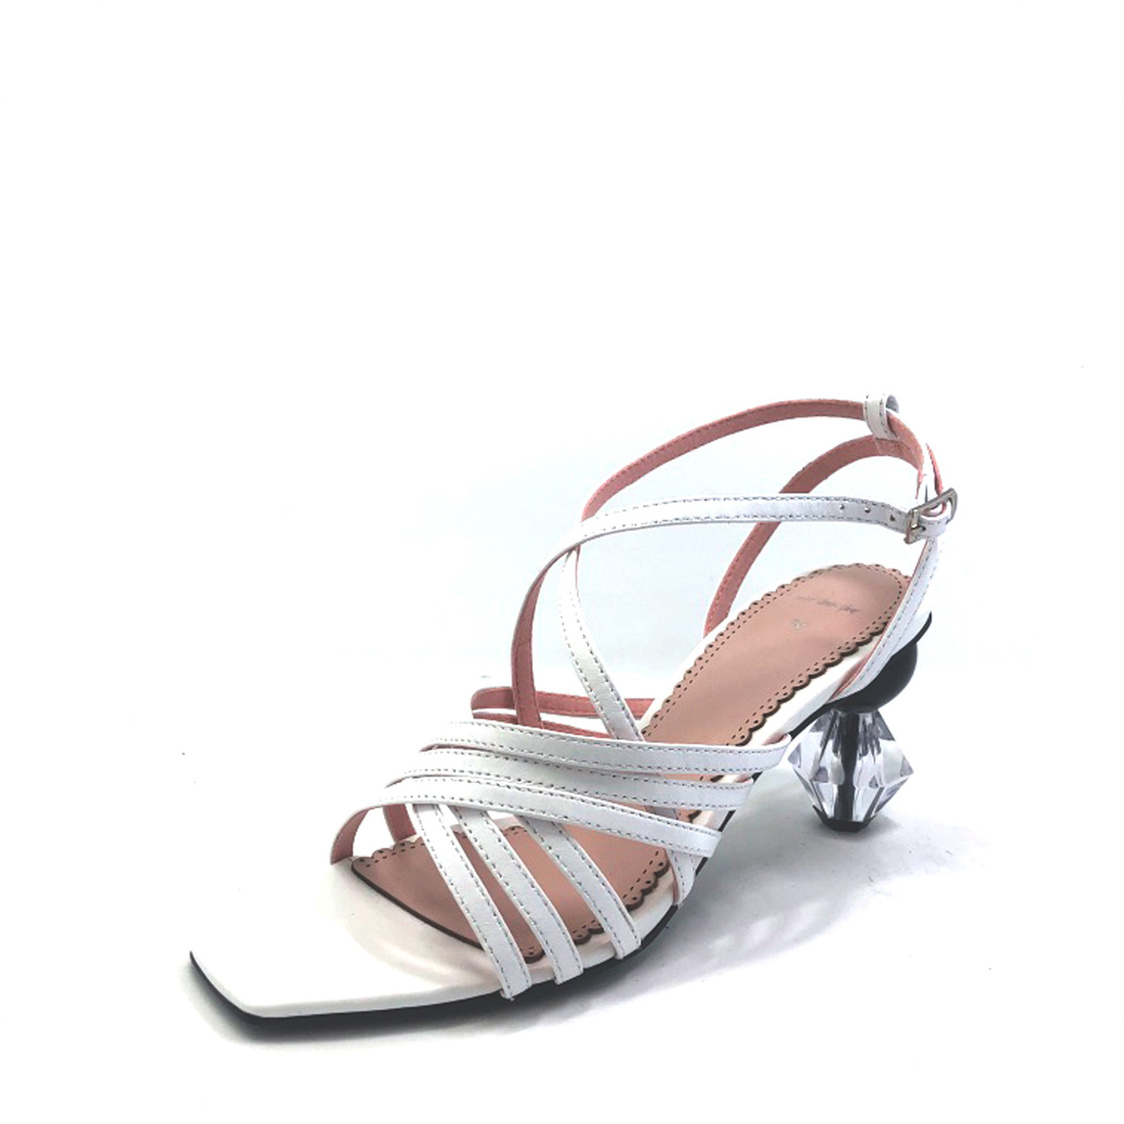 Martina Pink Strappy Sandals with Geometric Heel White